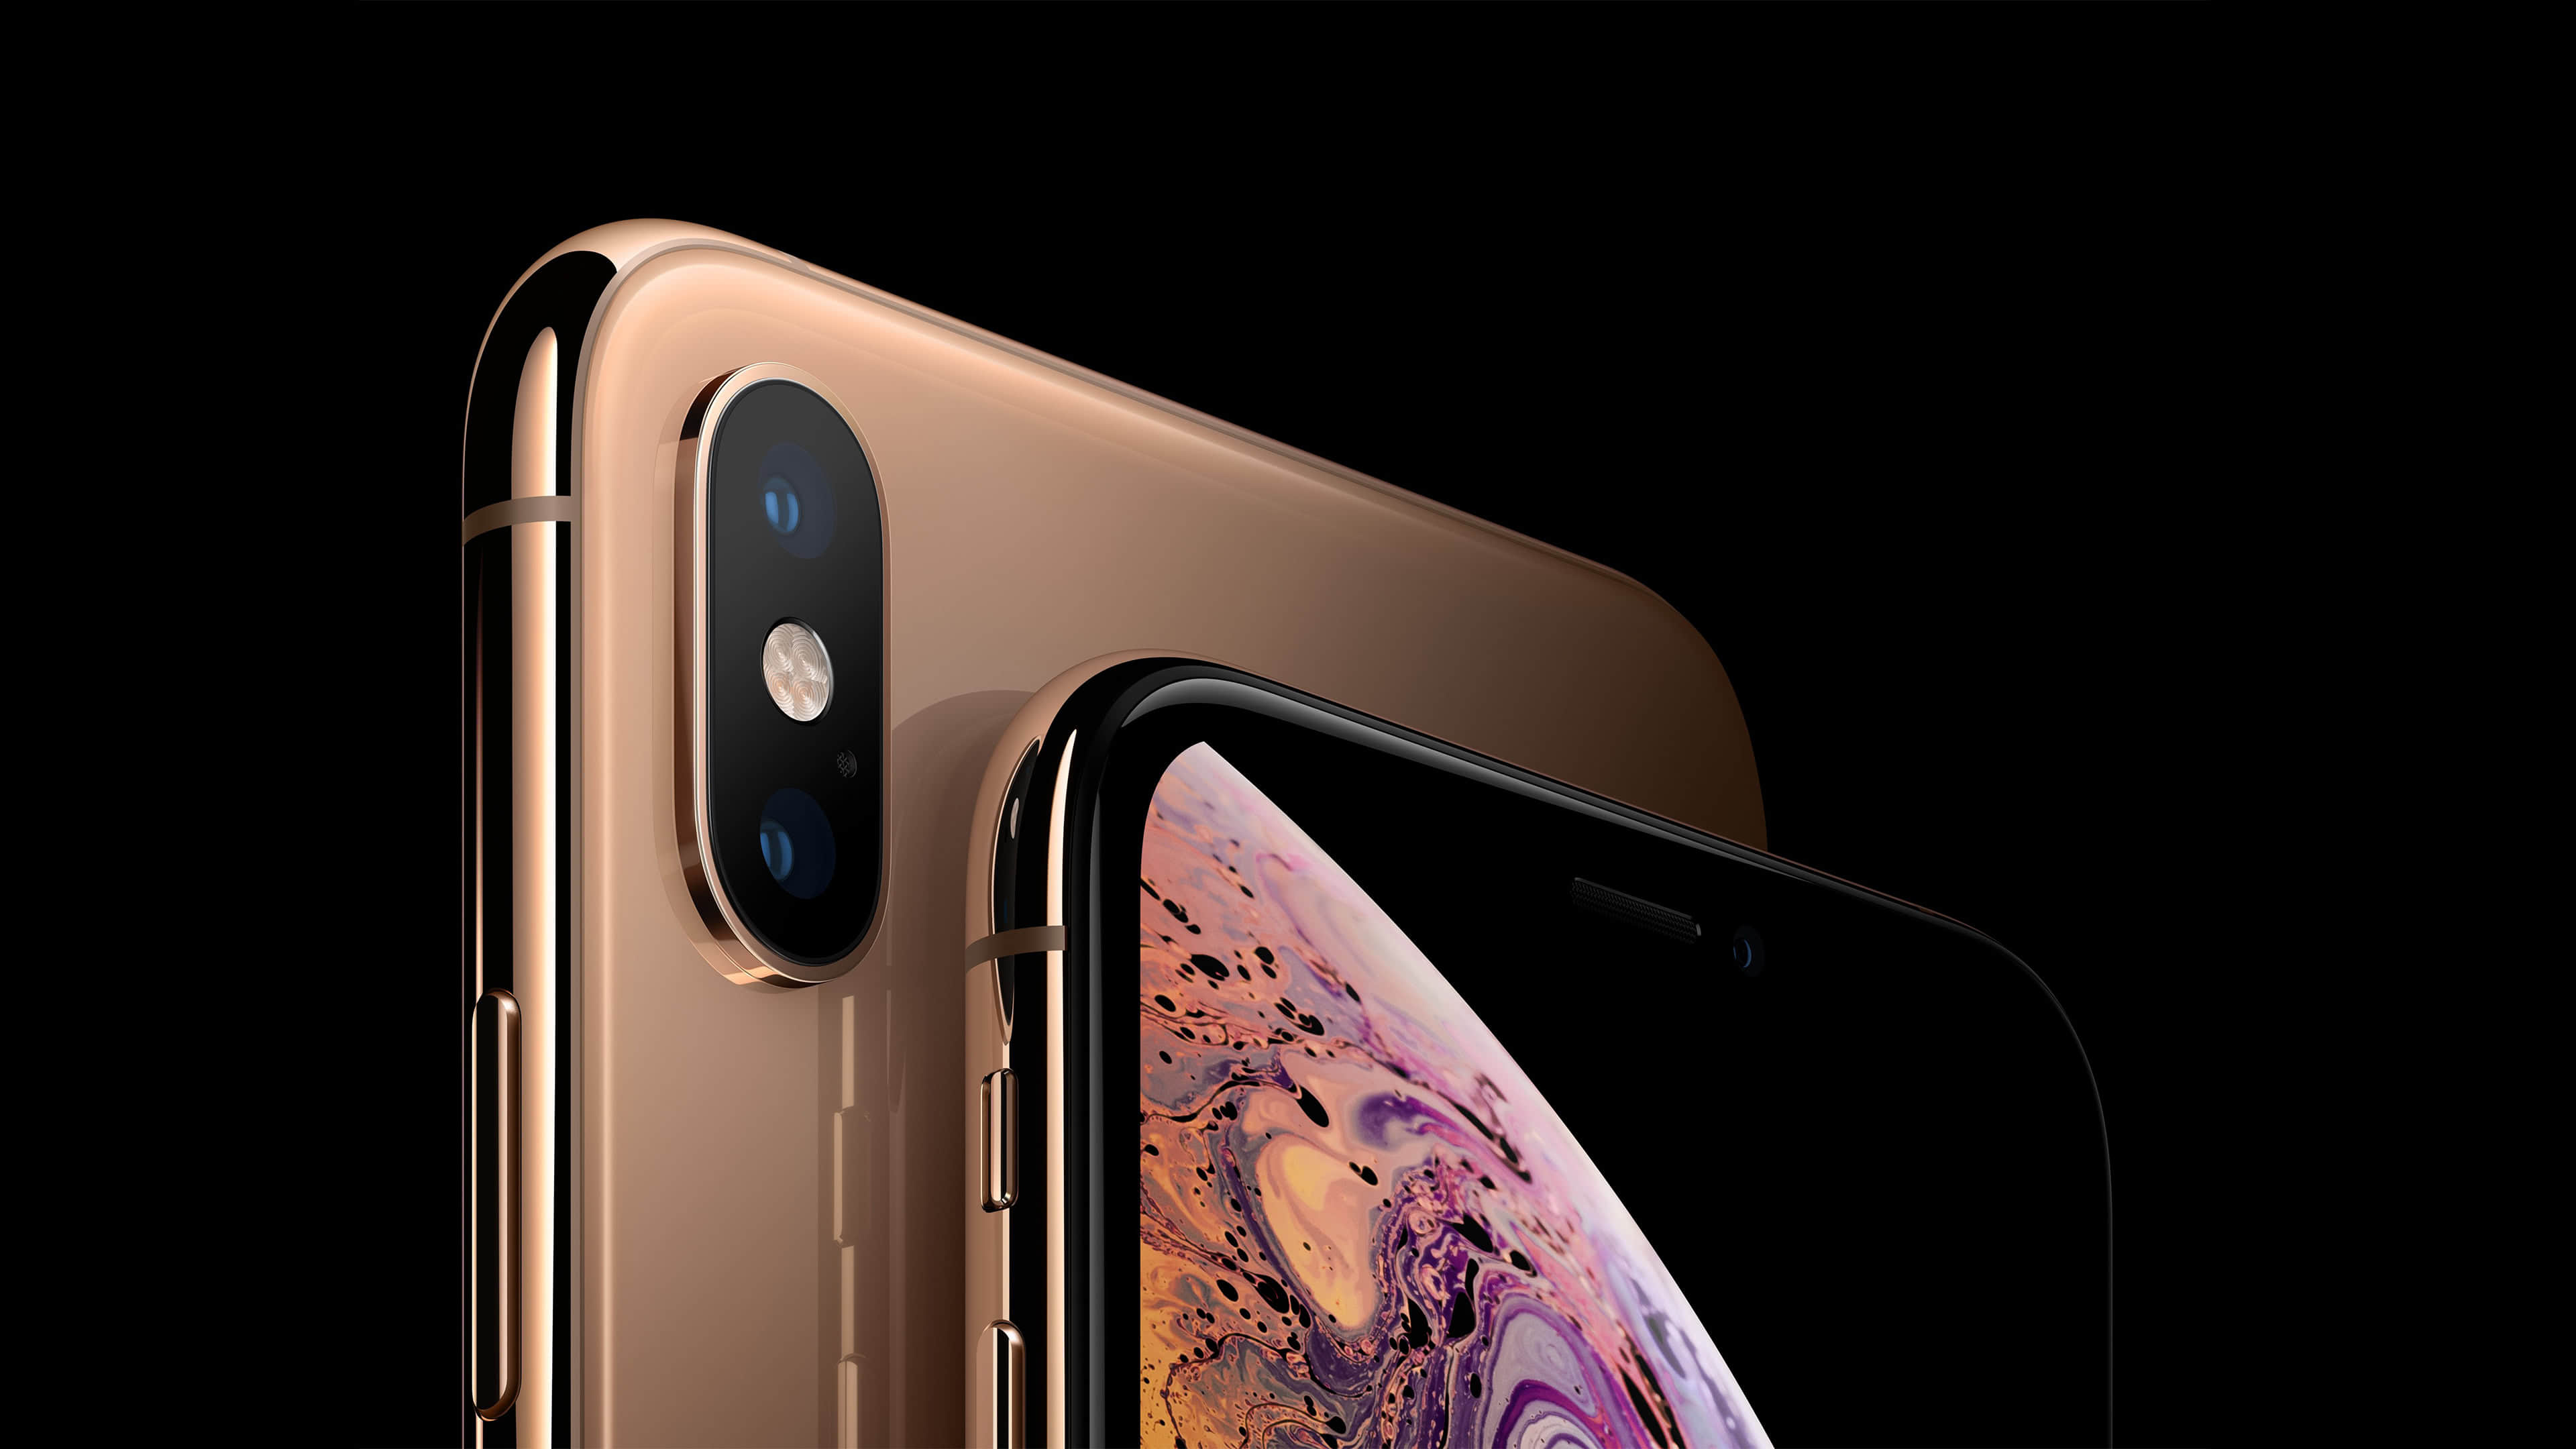 Apple Iphone Xs Max Uhd 4k Wallpaper Pixelz